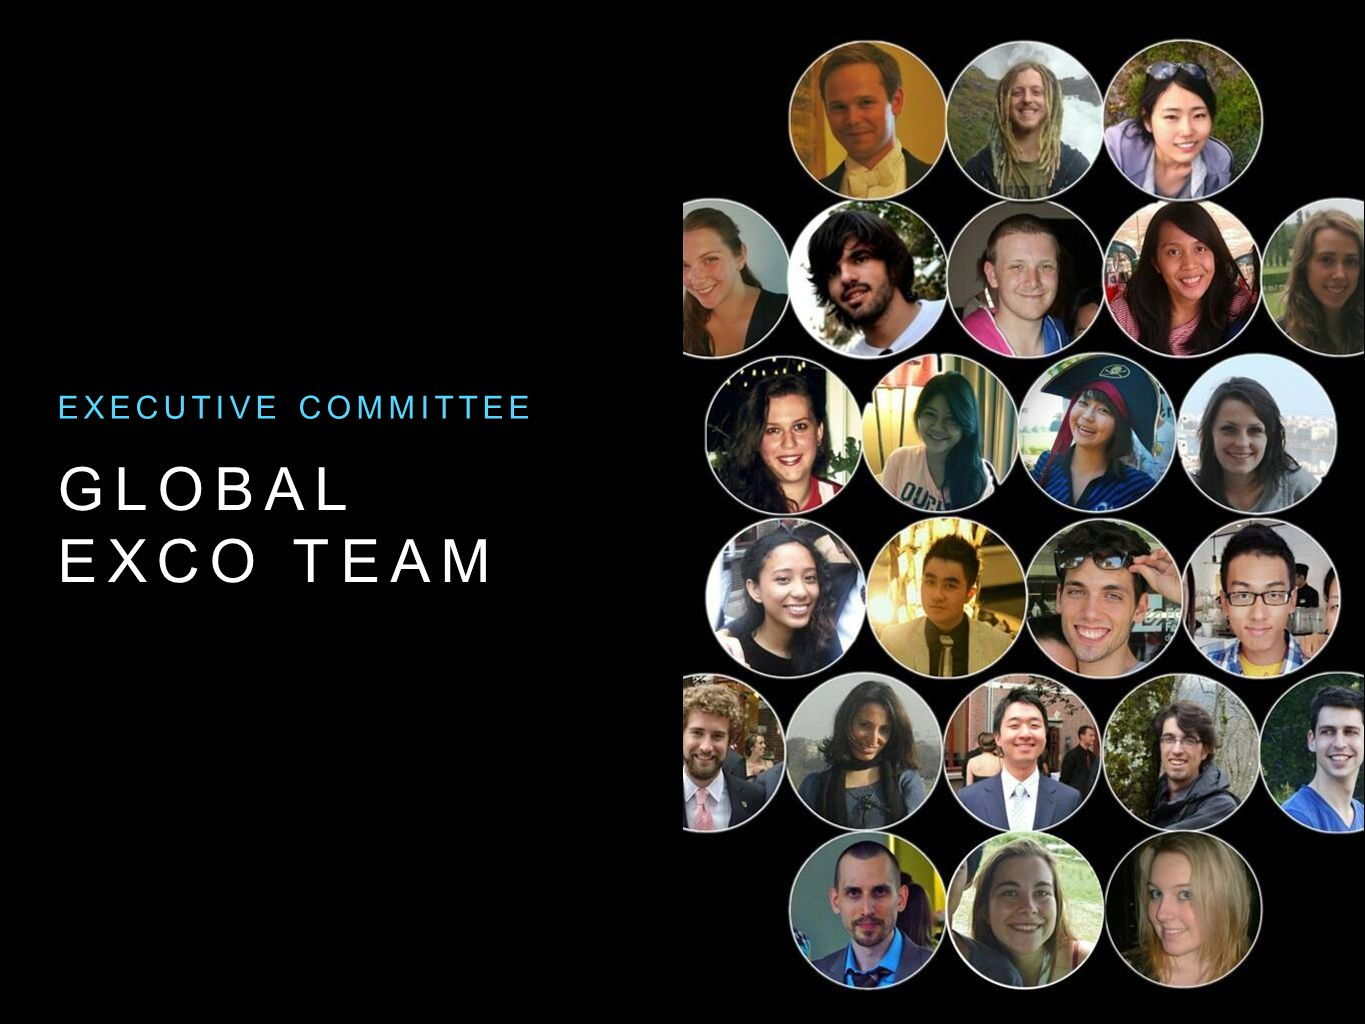 Executive committee Global Exco team